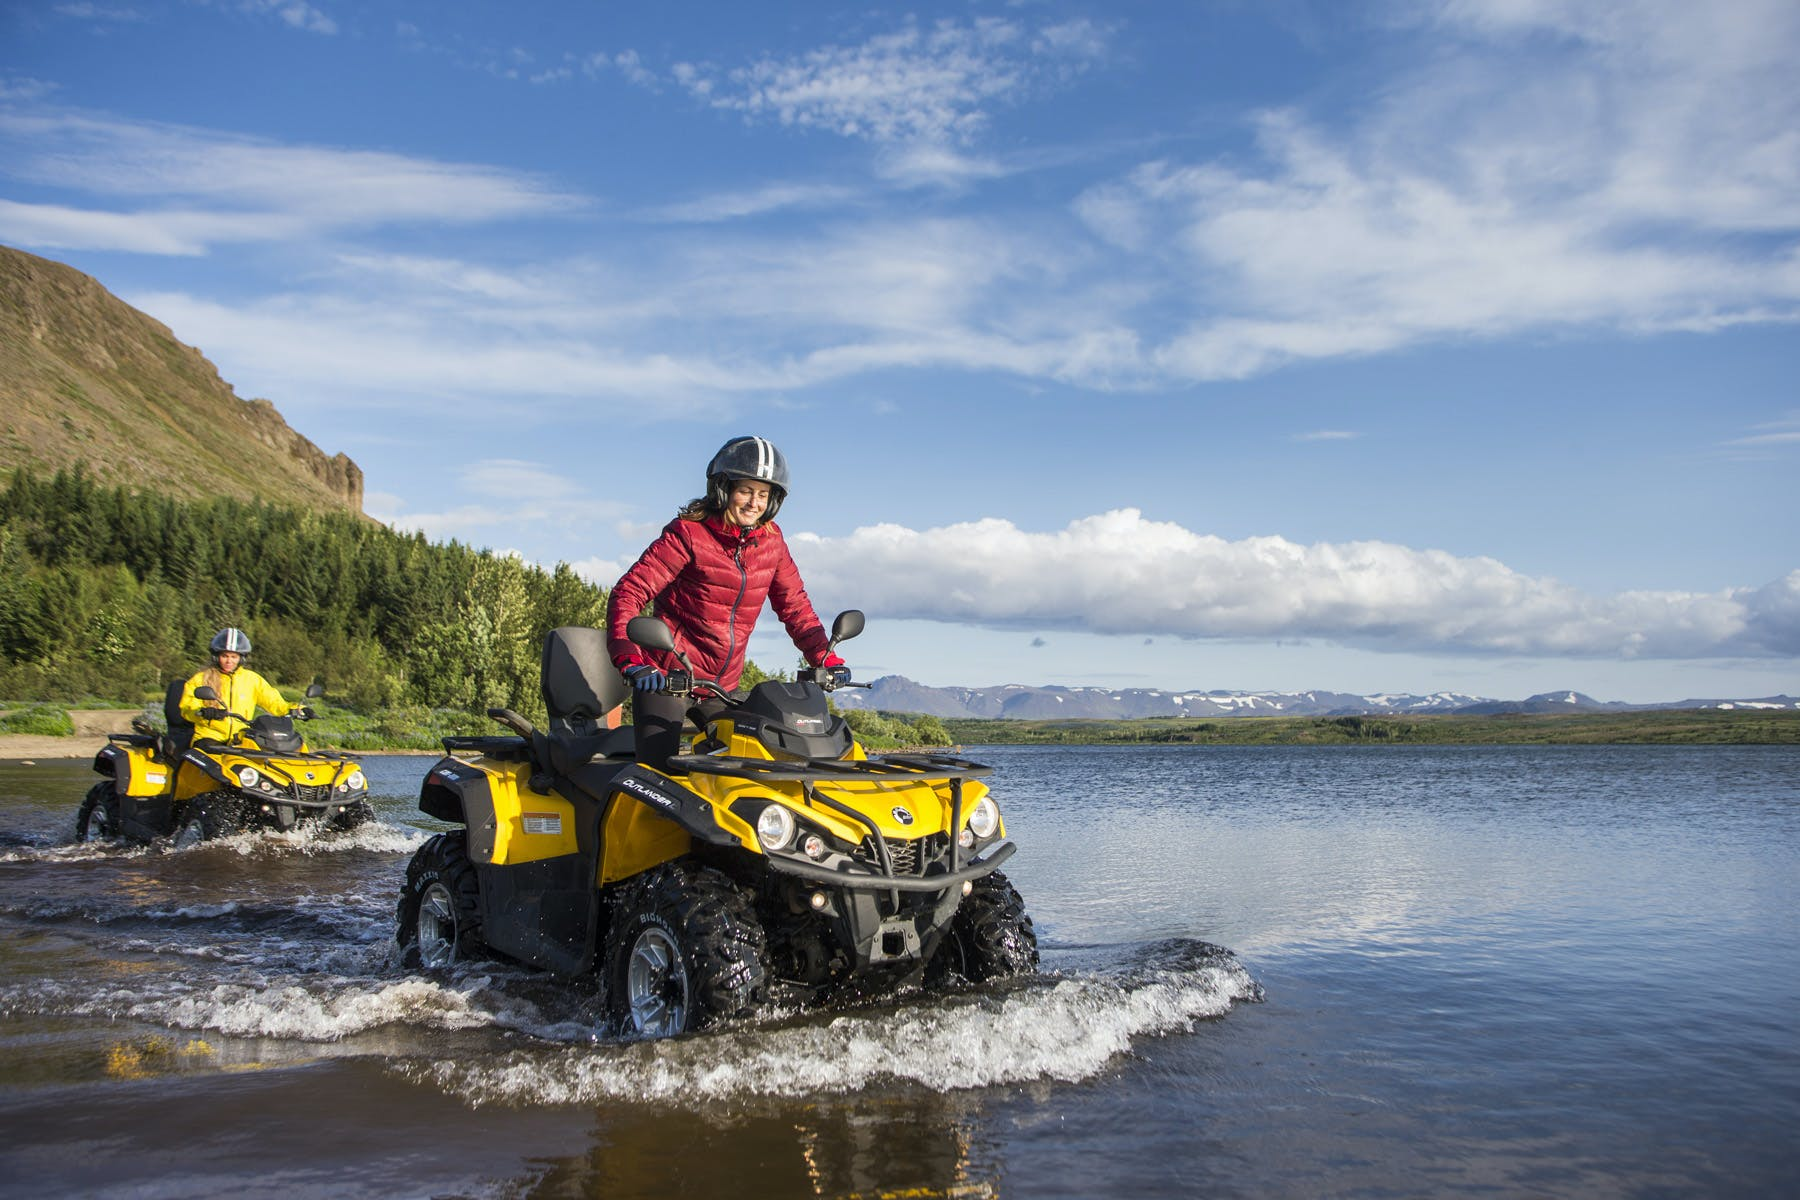 Golden Circle & ATV Ride | Sightseeing Adventure from Reykjavik